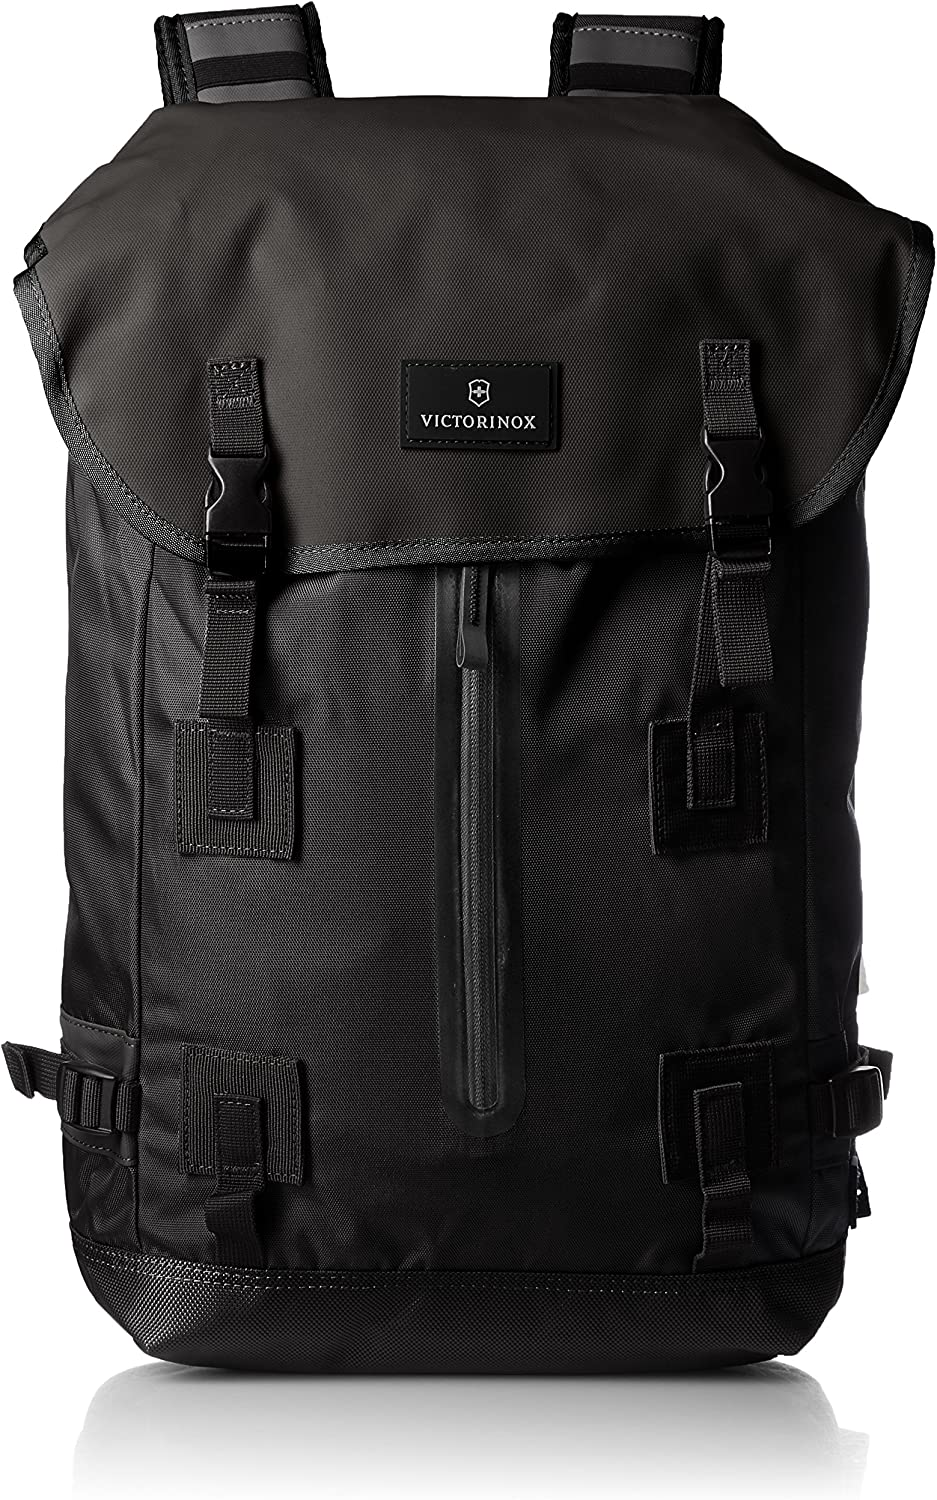 Victorinox Altmont 3.0 Flapover Drawstring Laptop Backpack, Black, 18.8-inch